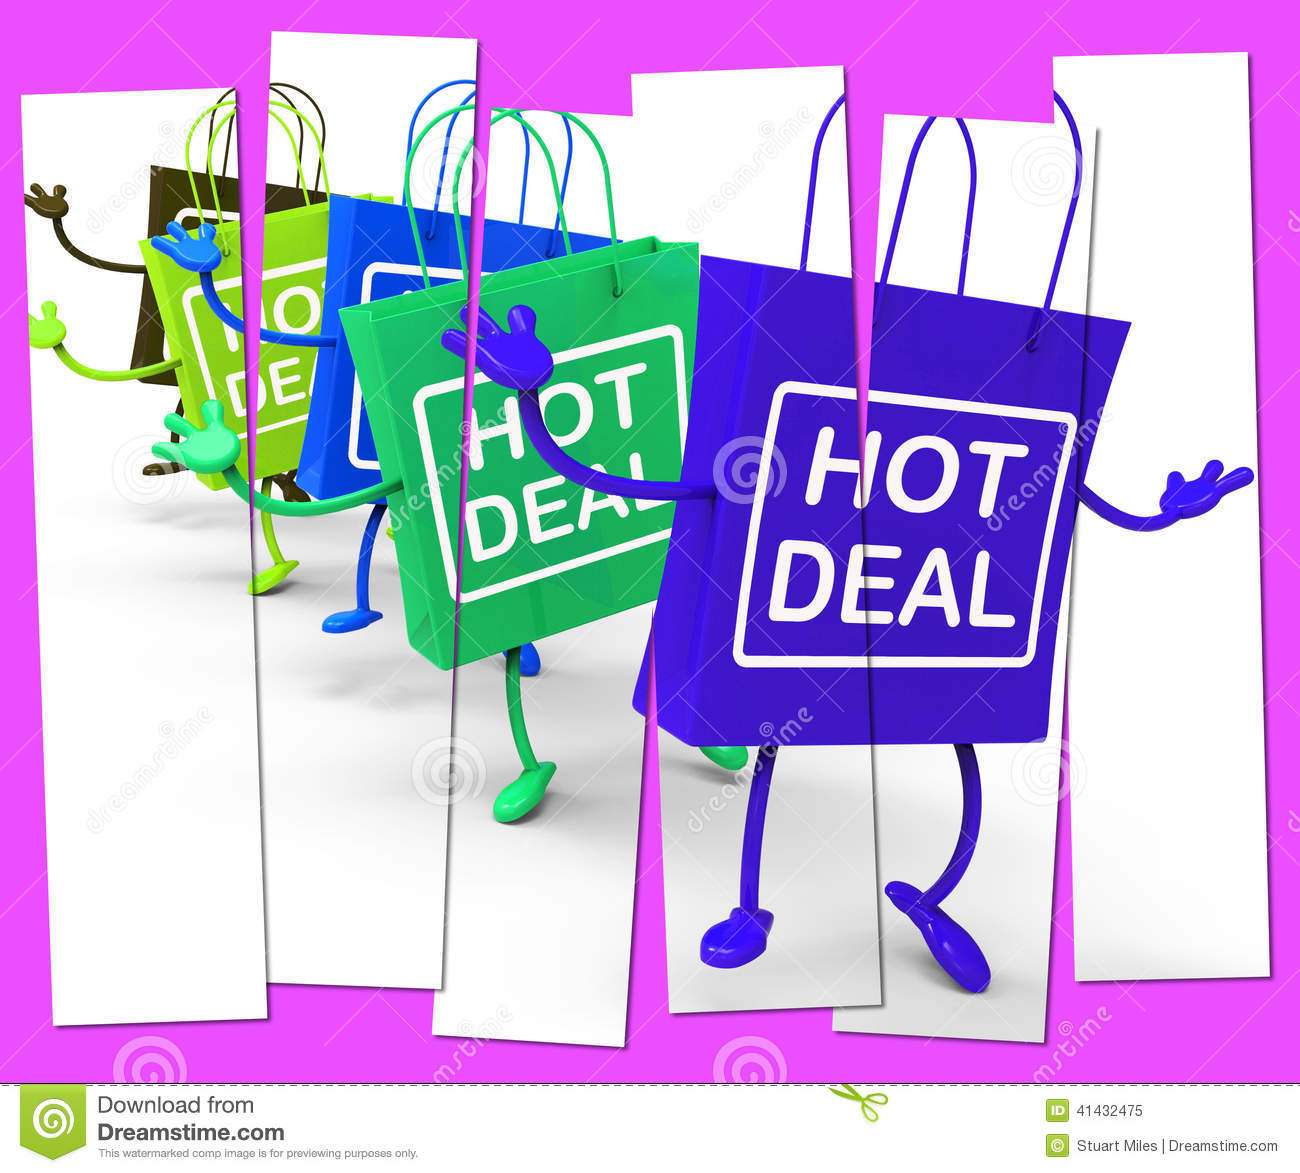 Sales Deal: Hot Deal Shopping Bag That Shows Sales, Bargains, And